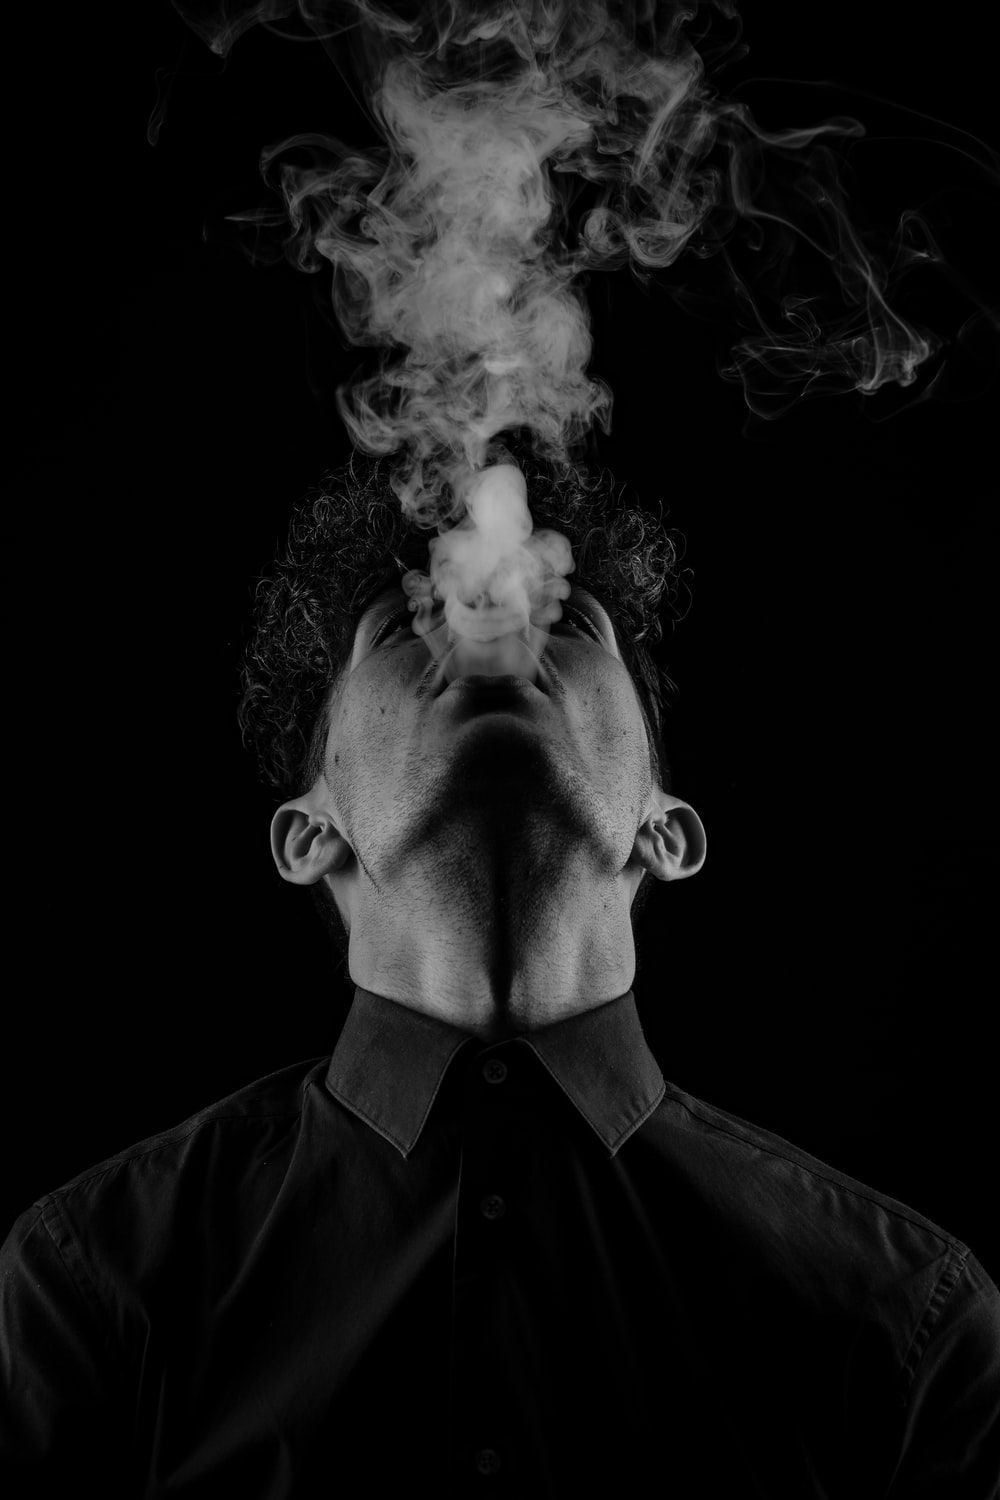 Smoke Boy Wallpapers Top Free Smoke Boy Backgrounds Wallpaperaccess Cool black wallpaper application for fans with 4k hd quality which will certainly beautify the appearance of your mobile screen. smoke boy wallpapers top free smoke